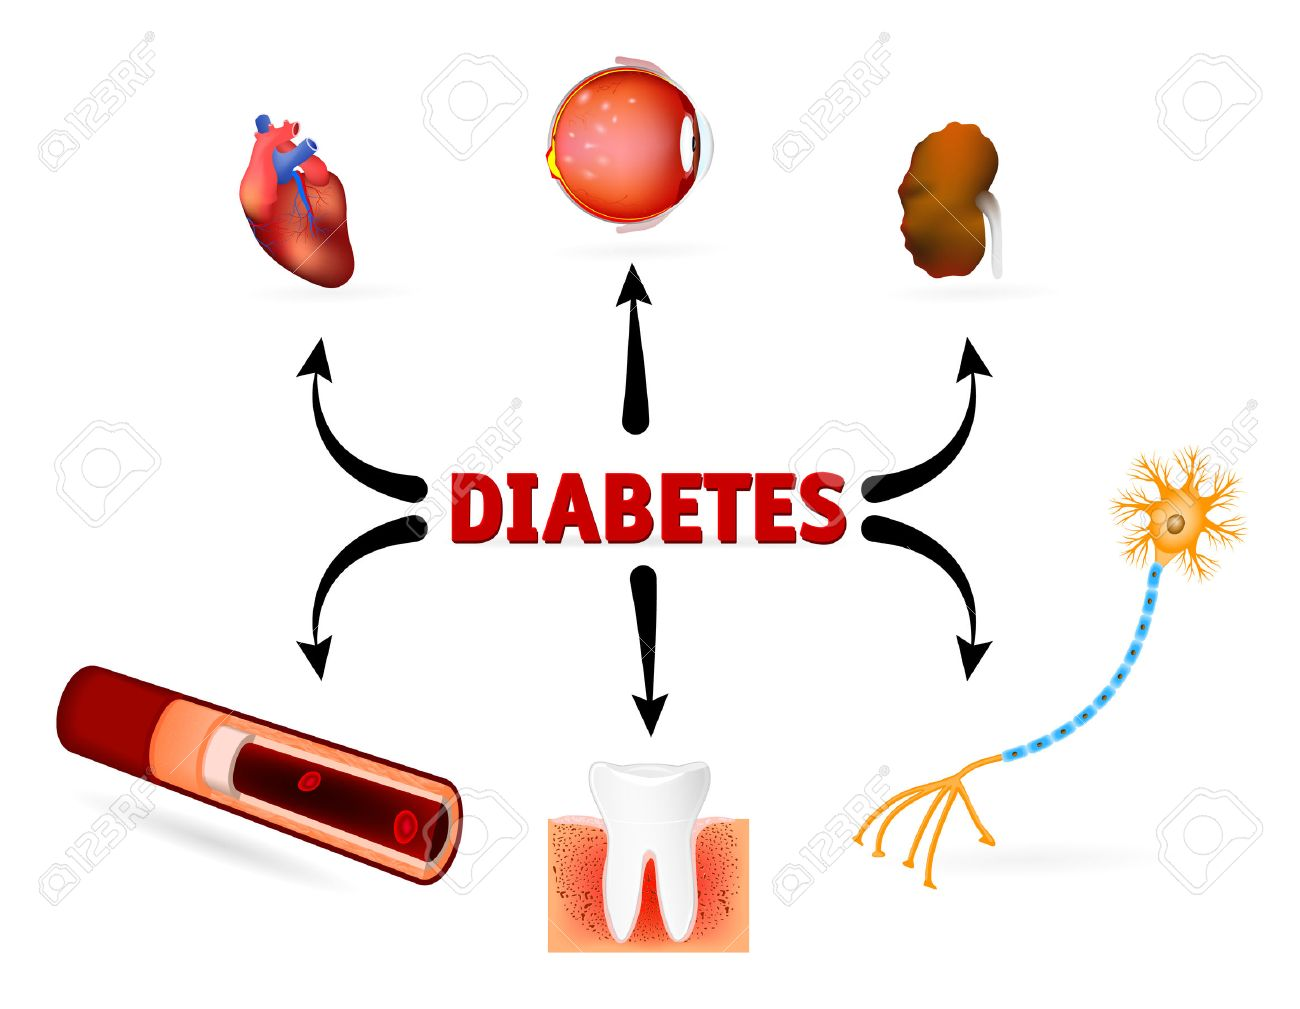 Complications of diabetes mellitus. diabetes complications such as blindness, heart disease, kidney failure, High Blood Pressure and other. - 33134293